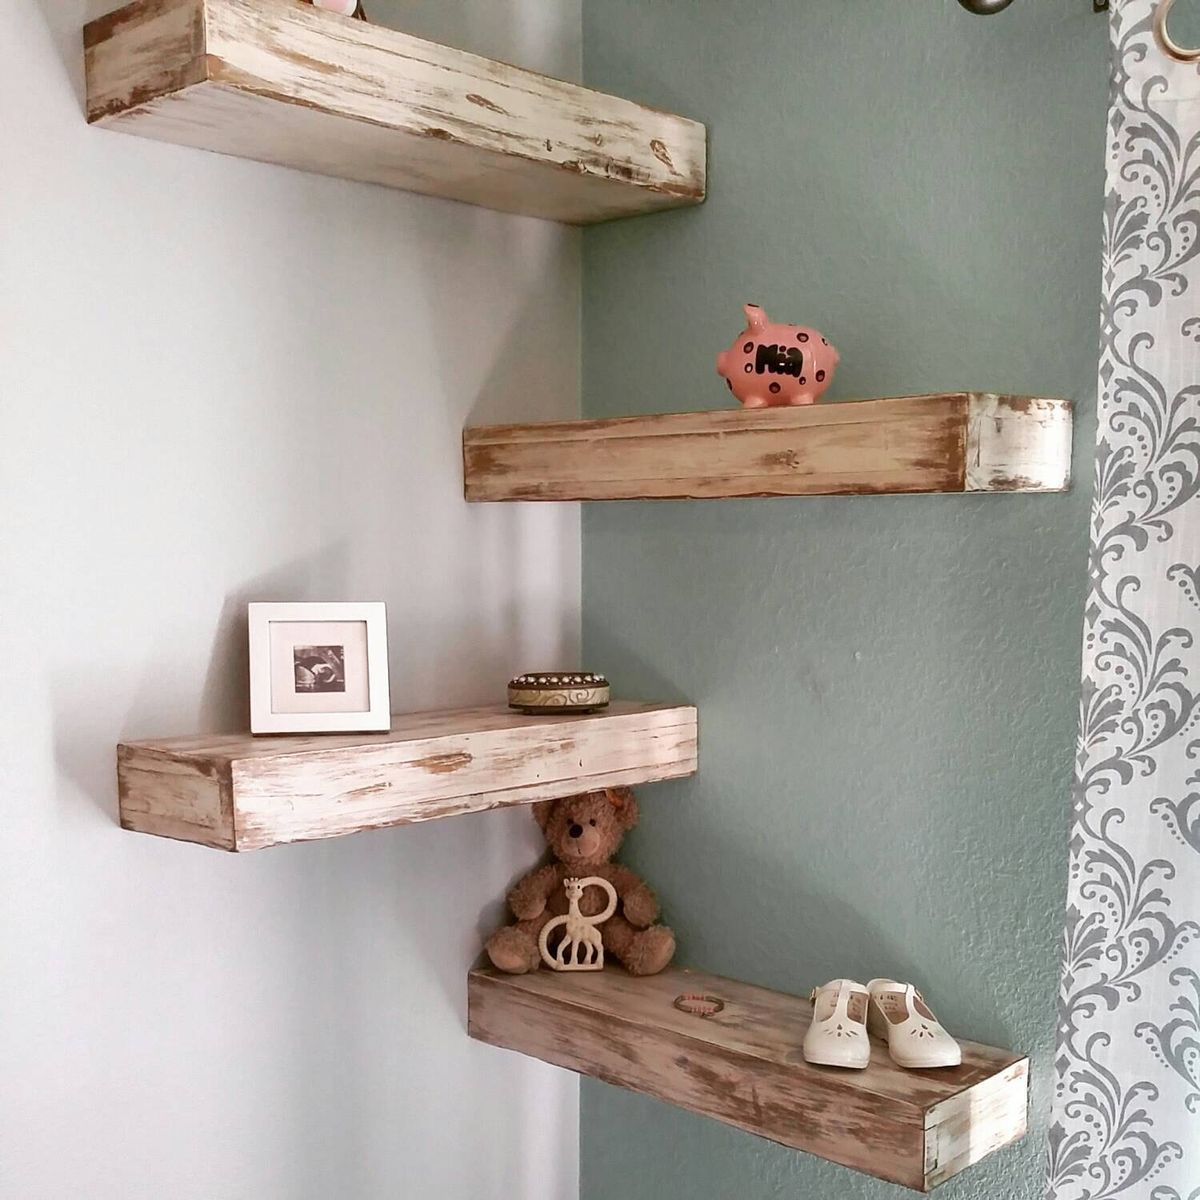 White Rustic Shabby Chic Floating Shelf 60 Inch By Salvagerepurposed On Etsy Https